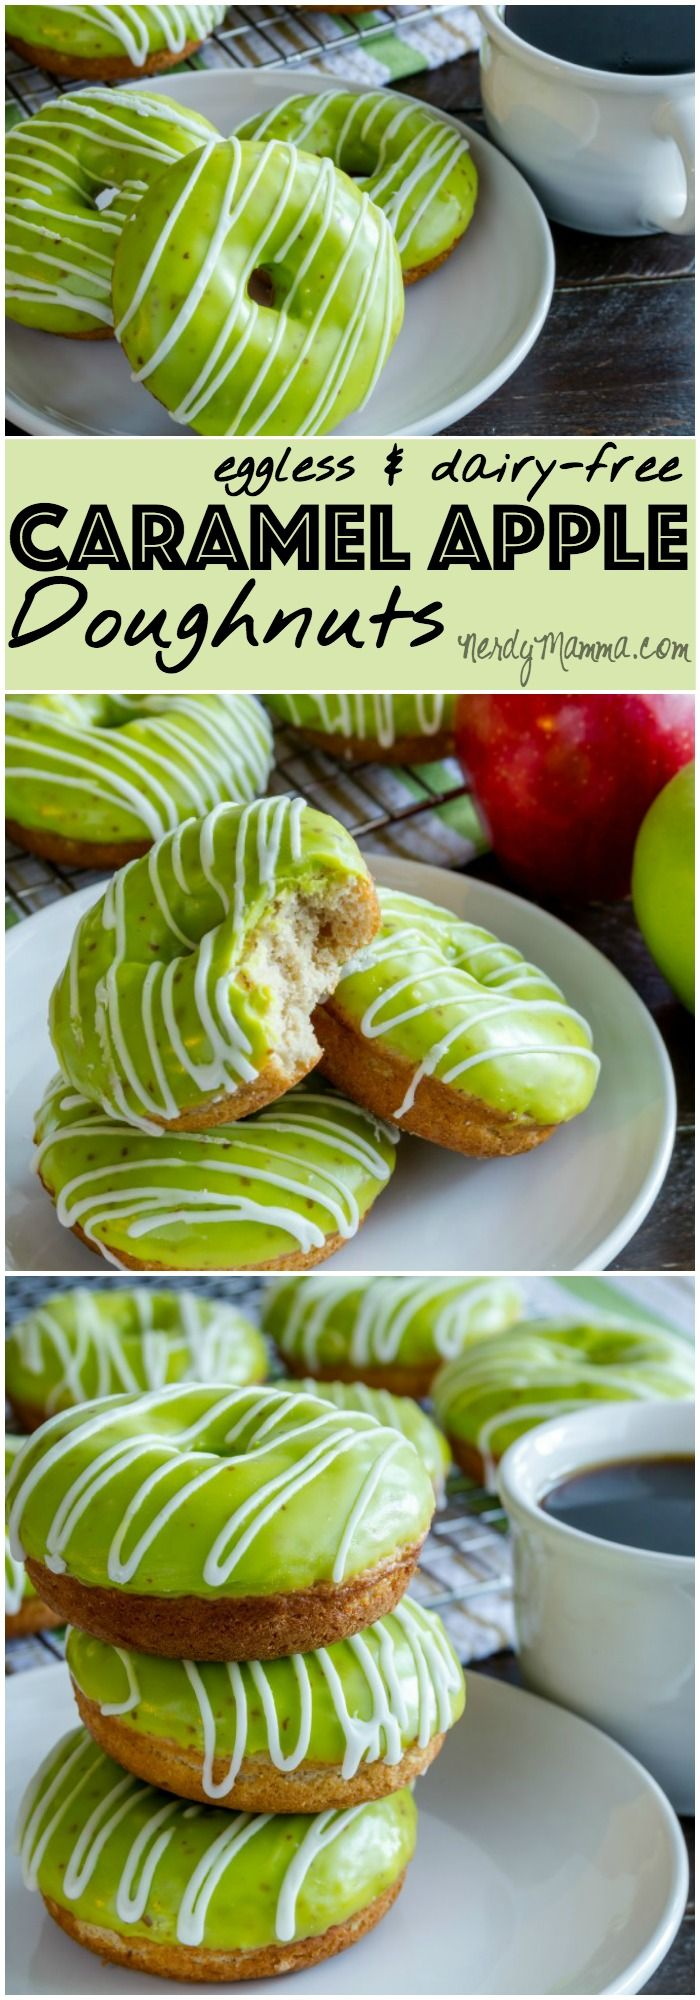 Eggless and Dairy-Free Caramel Apple Doughnuts